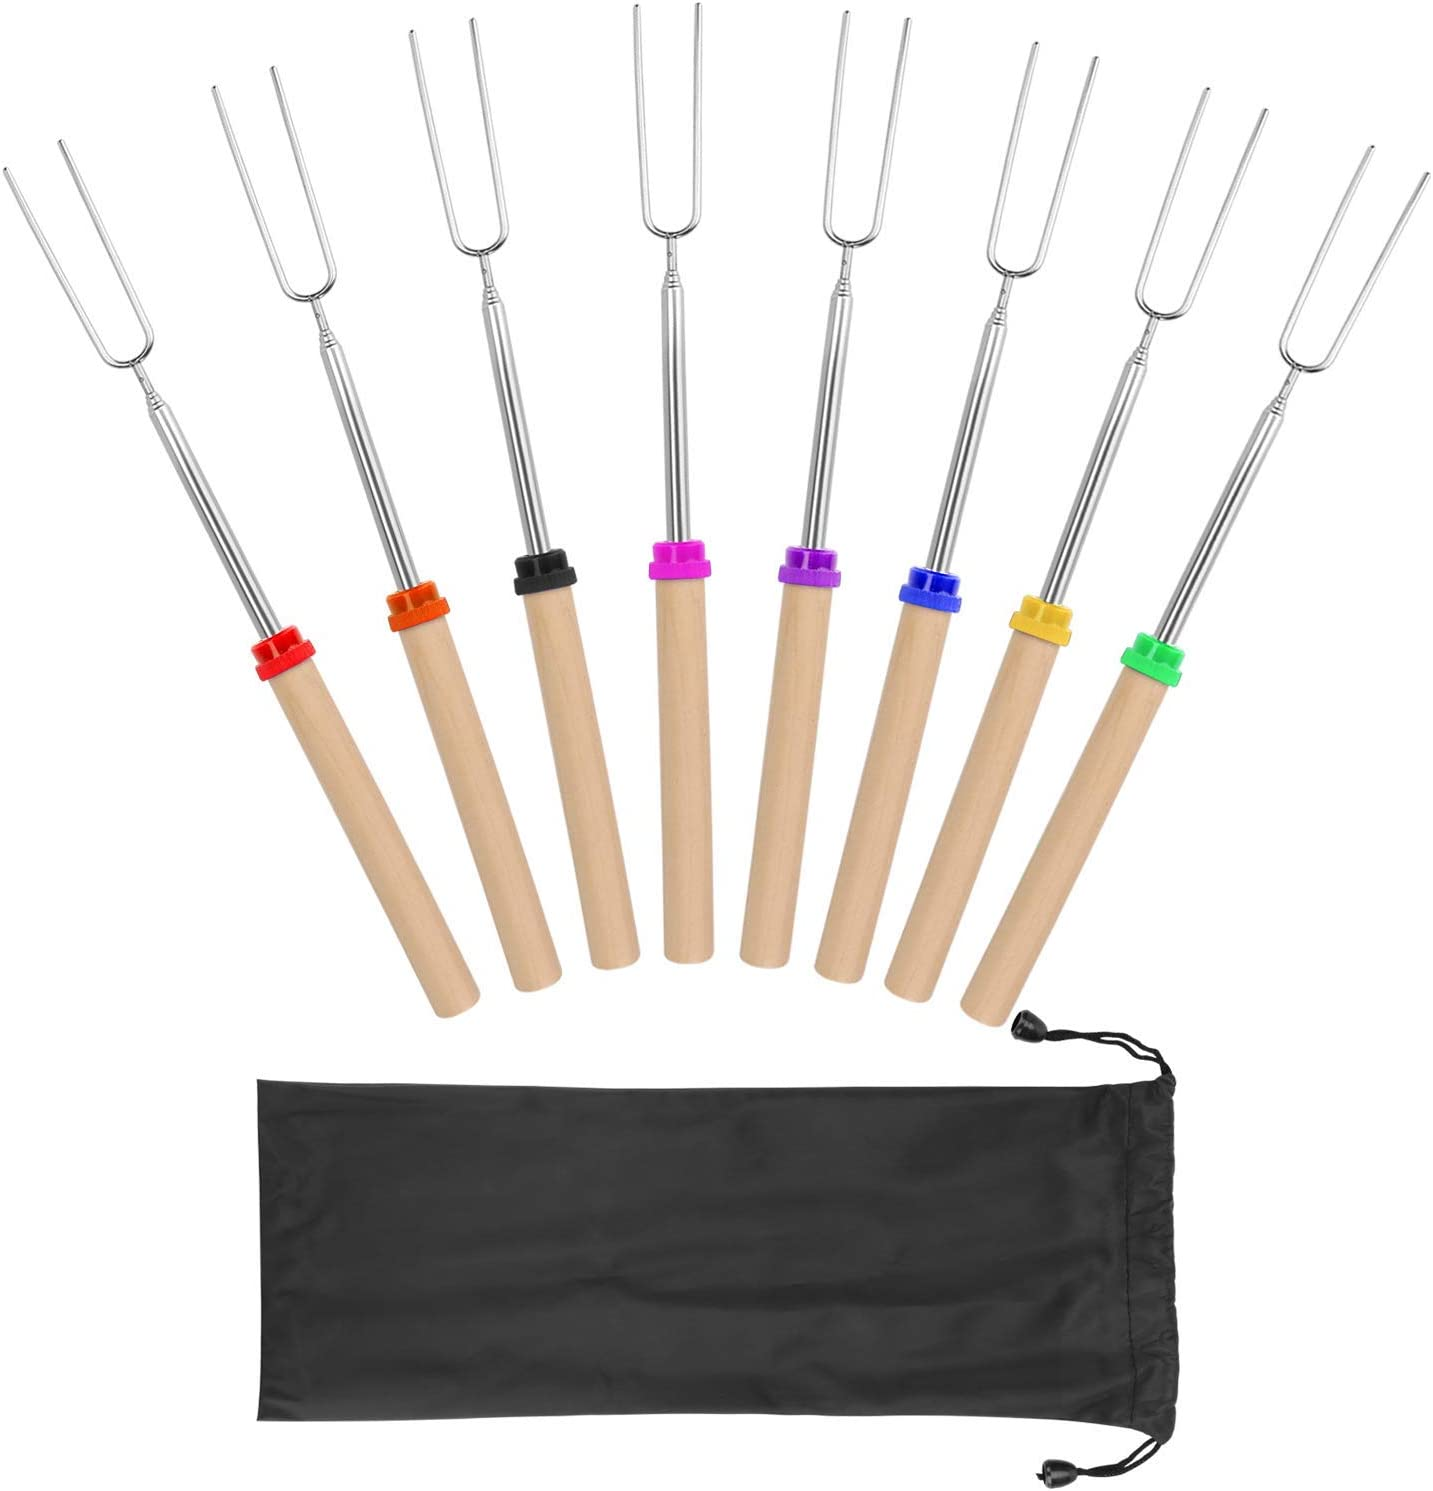 Coindivi Marshmallow Roasting Sticks, Smores Skewers Telescoping Rotating Forks Set of 8 Hot Dog Fire Pit Outdoor Fireplace Campfire Accessories-8 Multicolored 32 Inch Extendable Steel Fork Camping